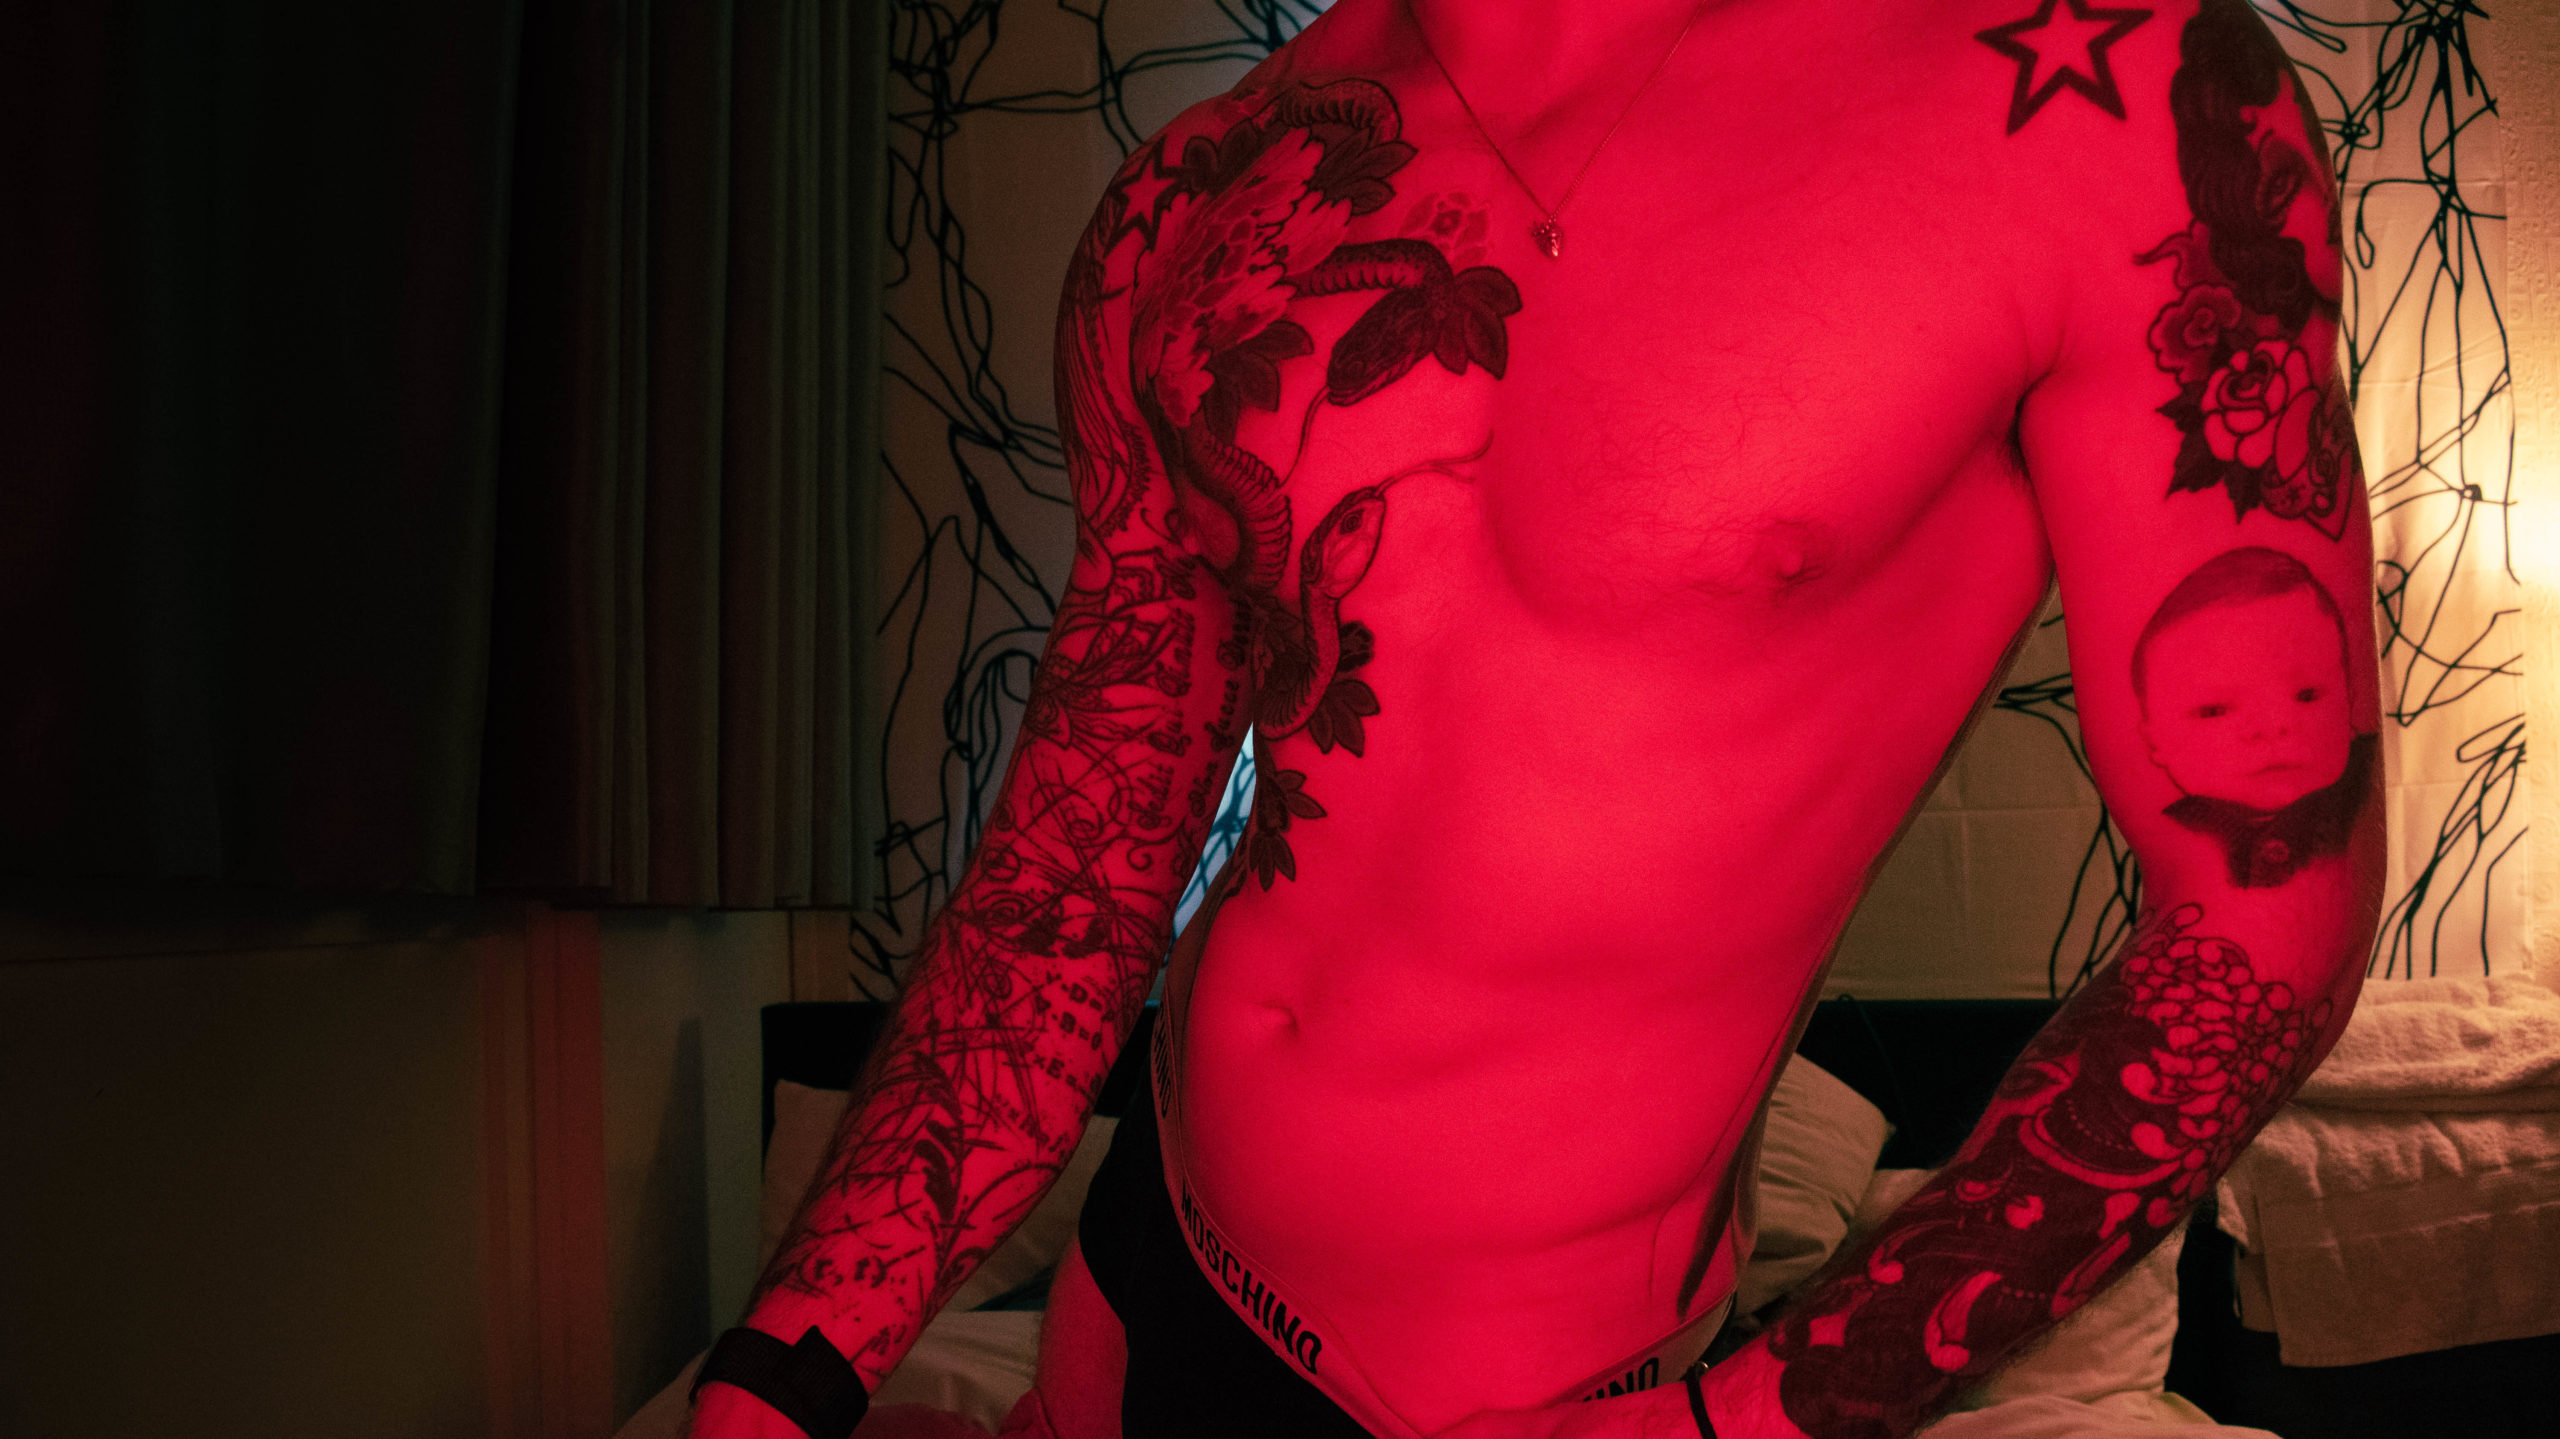 tattooed male torso and underwear in red light